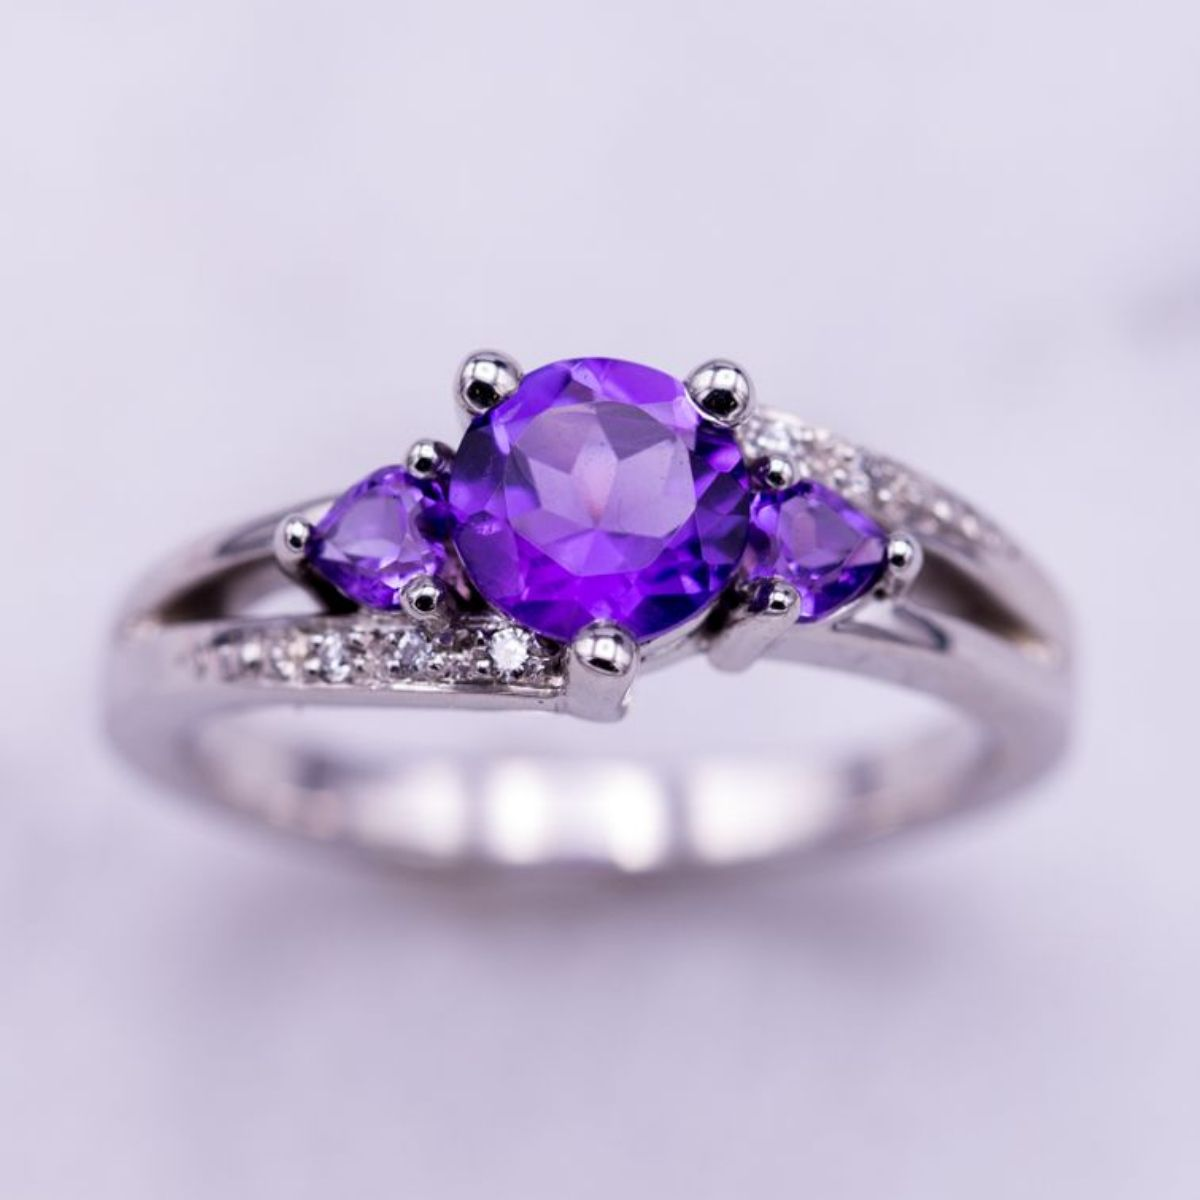 rare heidi engagement rings kjeldsen natural purple sapphire ring diamond jewellery